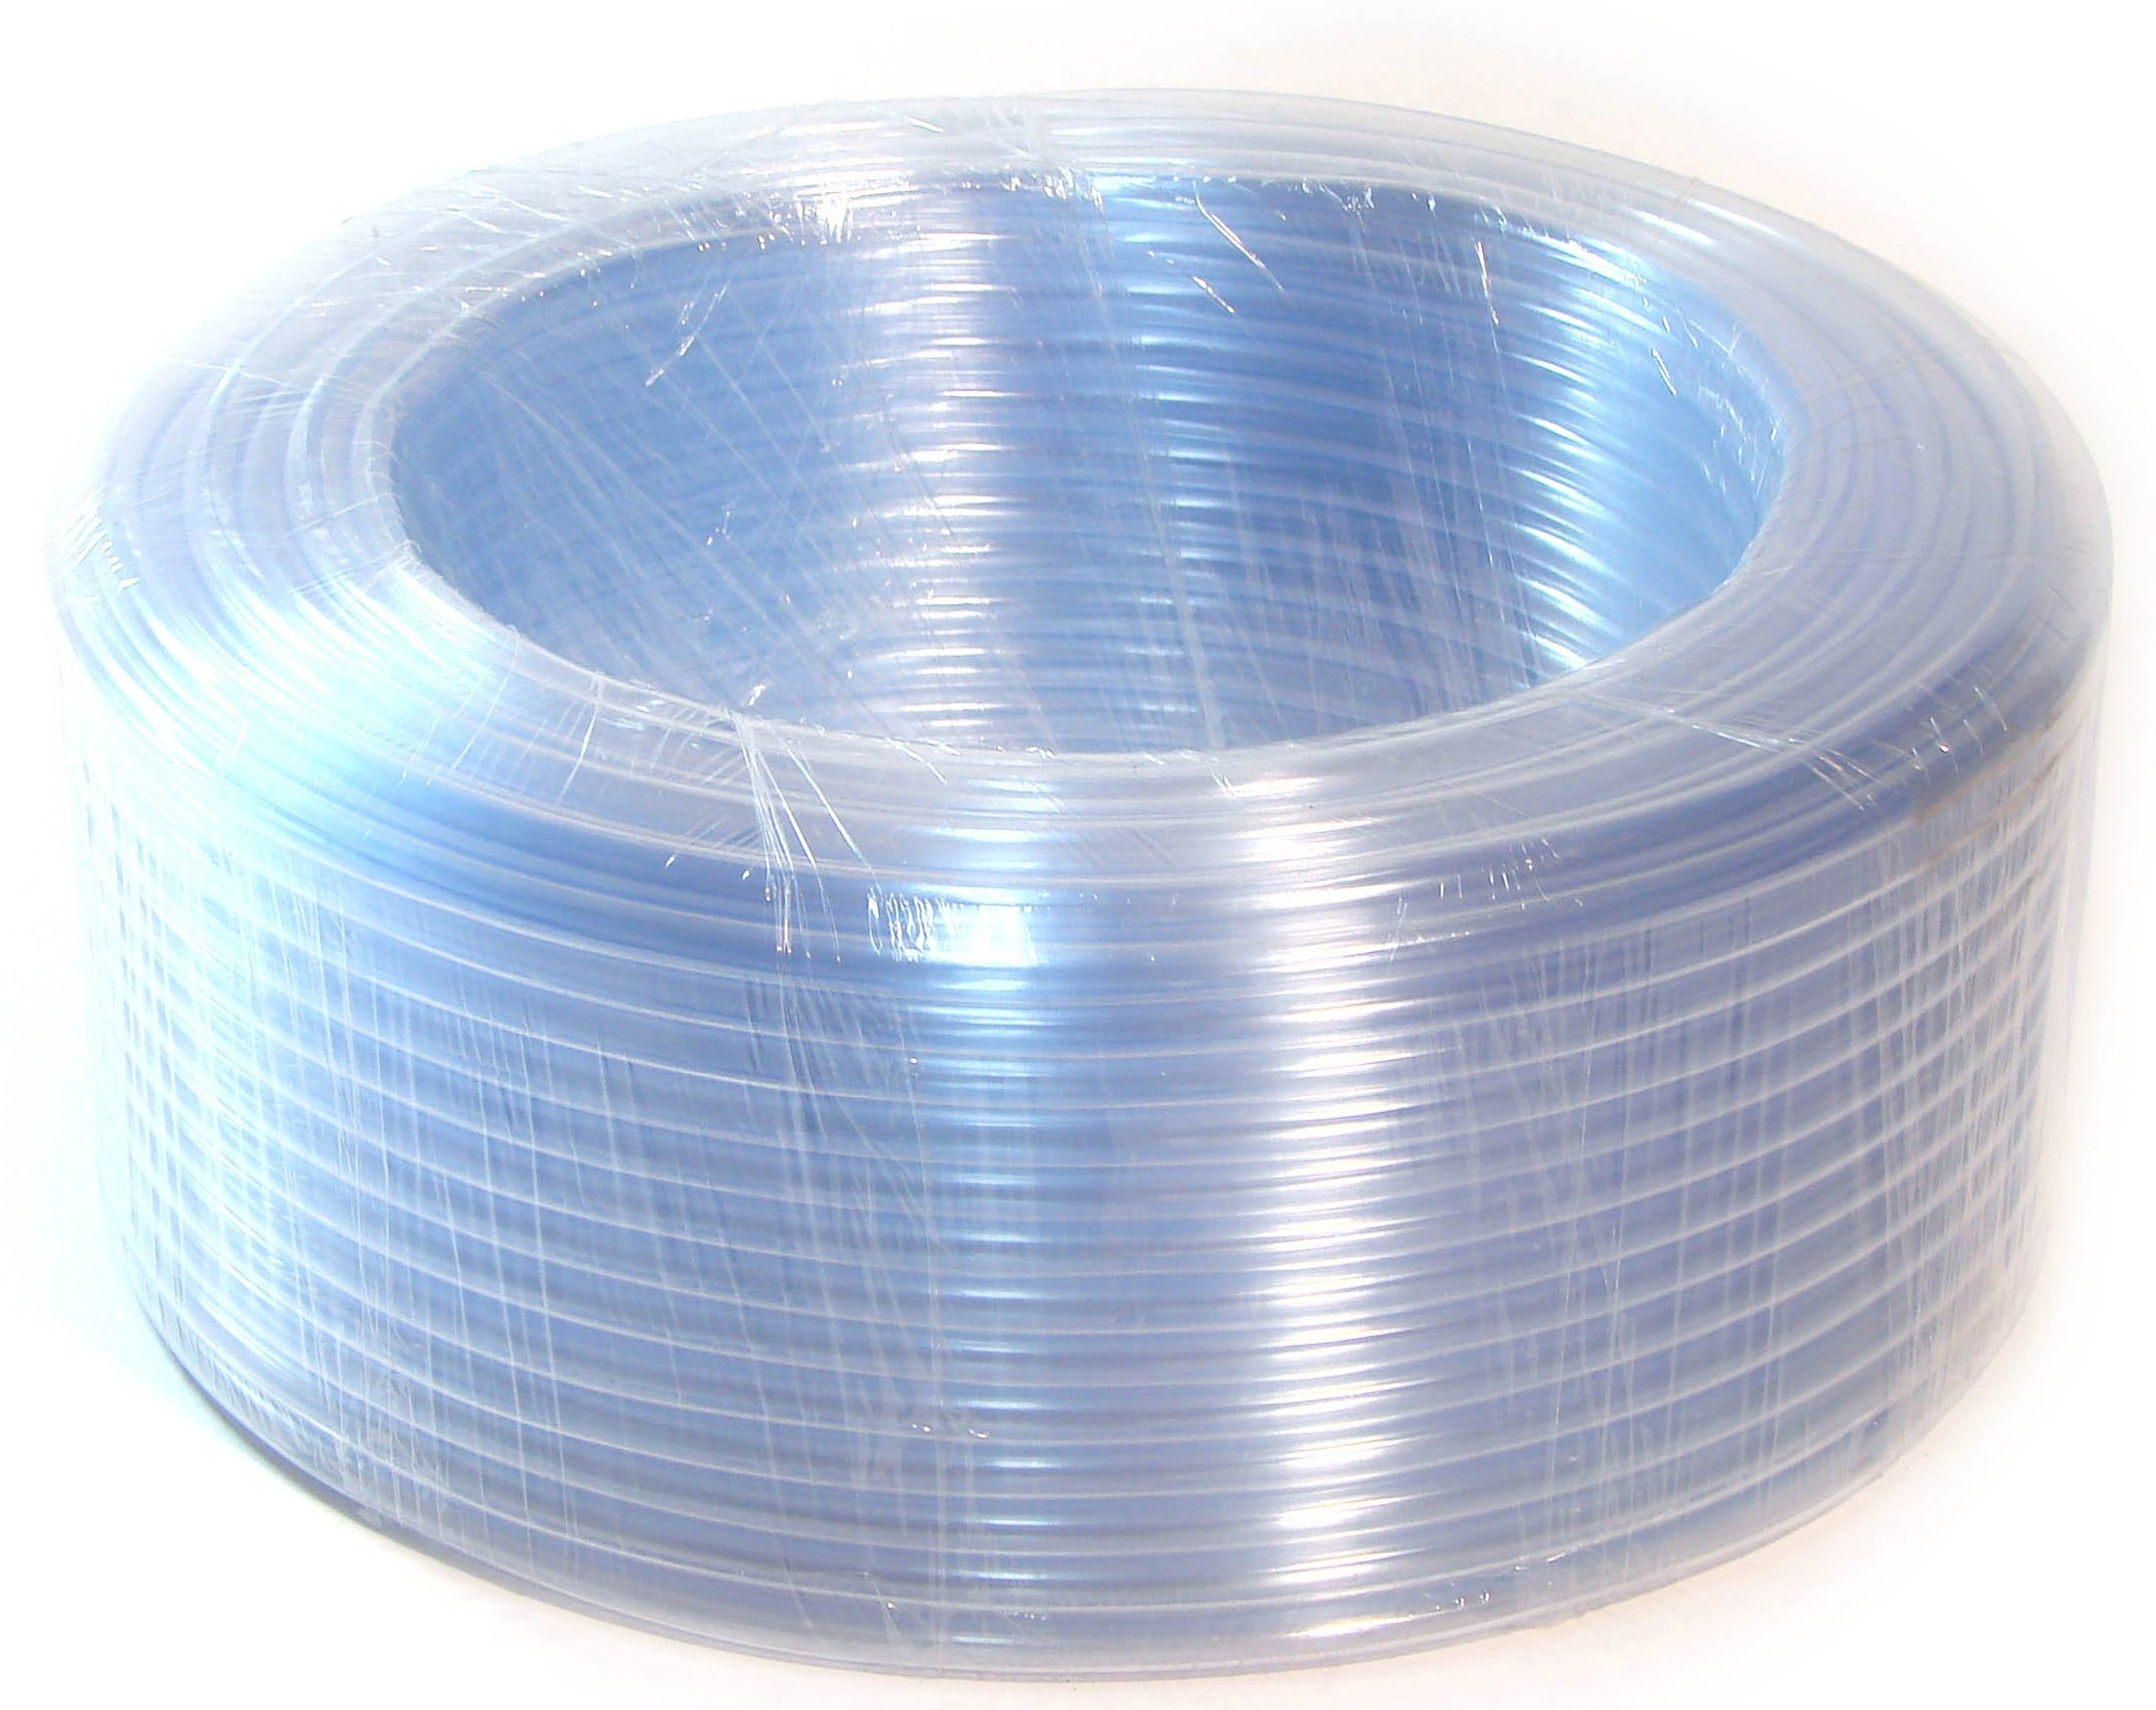 siny ID 1/4''/OD 5/16'' 100 Ft 30 Meter PVC Clear Hose Tubing Aquarium Air Tube Pond Garden Water Delivery by siny